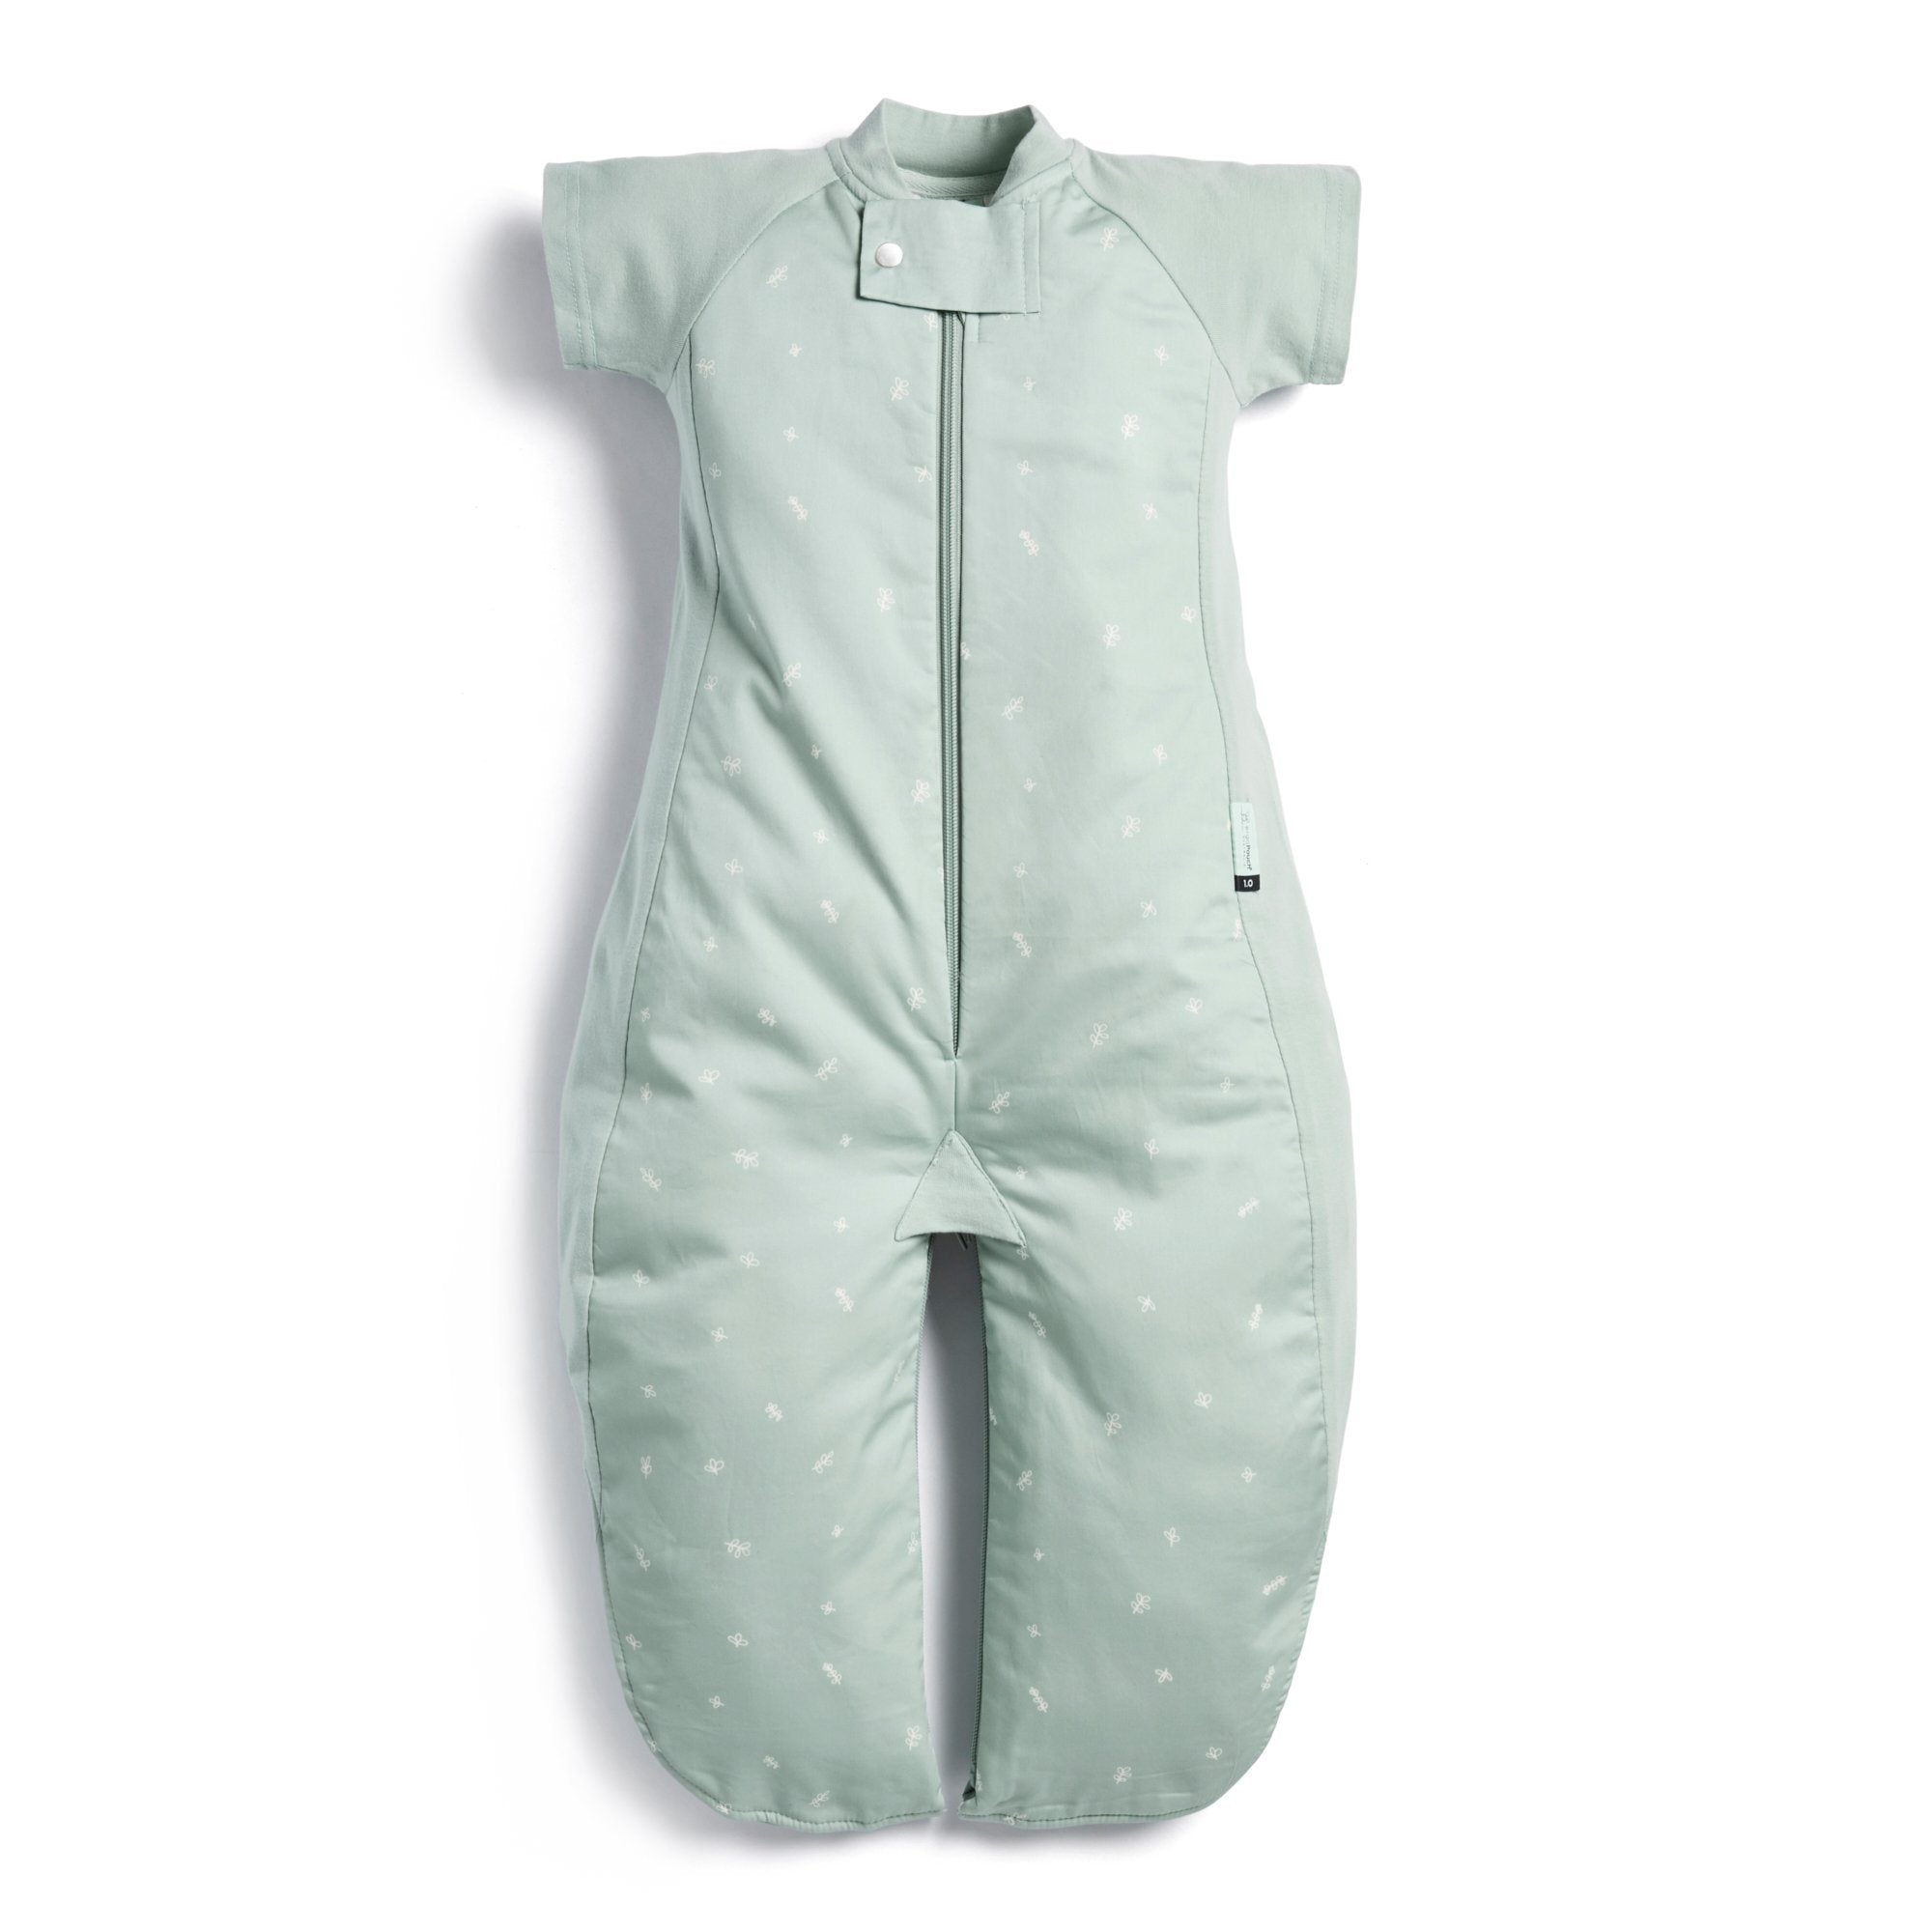 Sleep Suit Bag 1.0 tog (Sage)